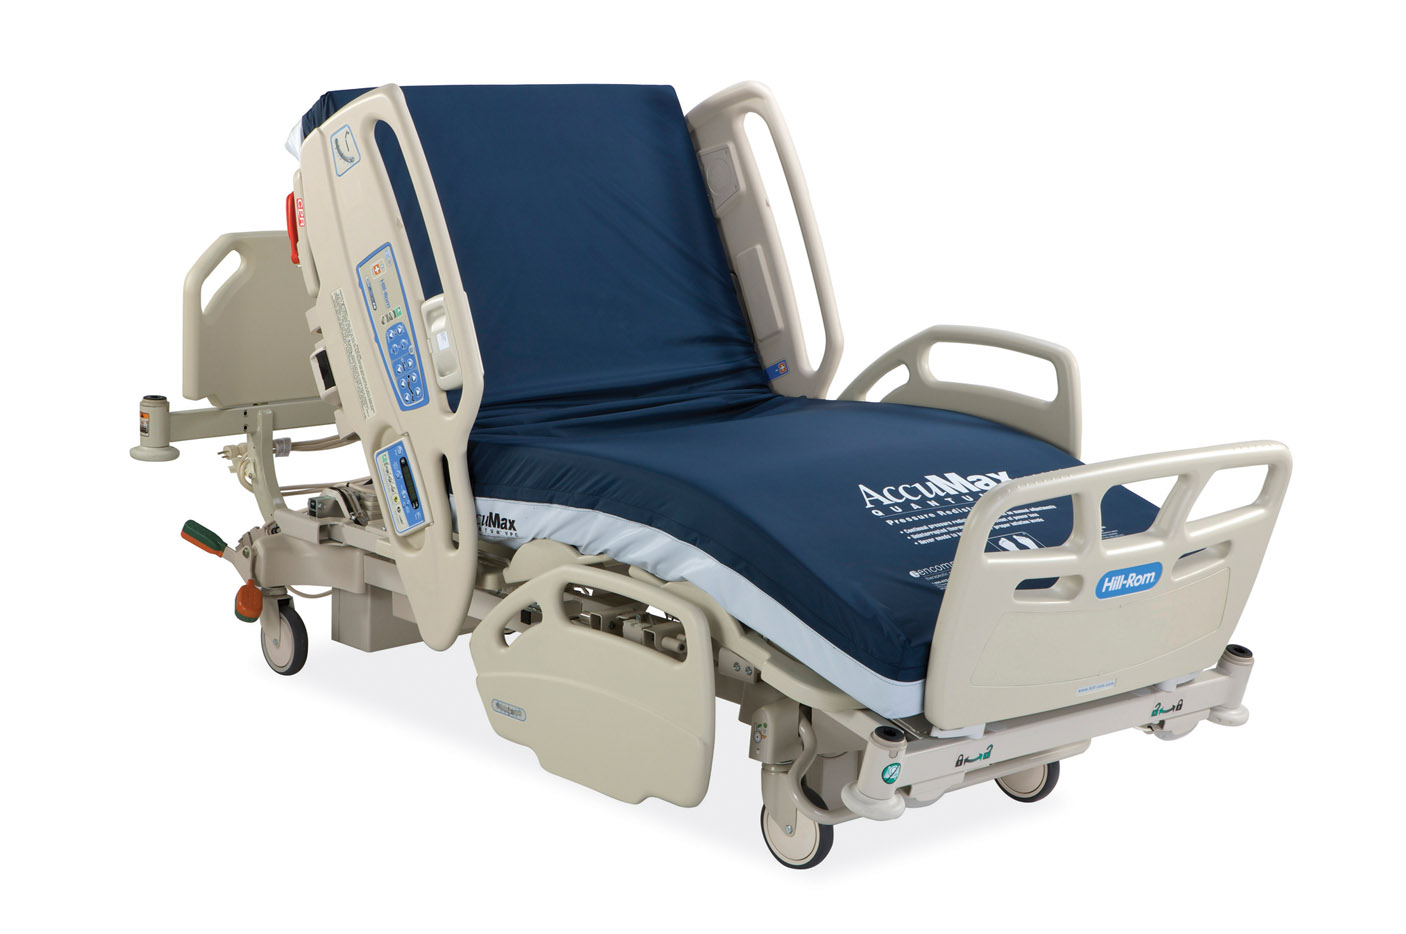 Medical Surgical Beds Careassist 174 Es Hill Rom 174